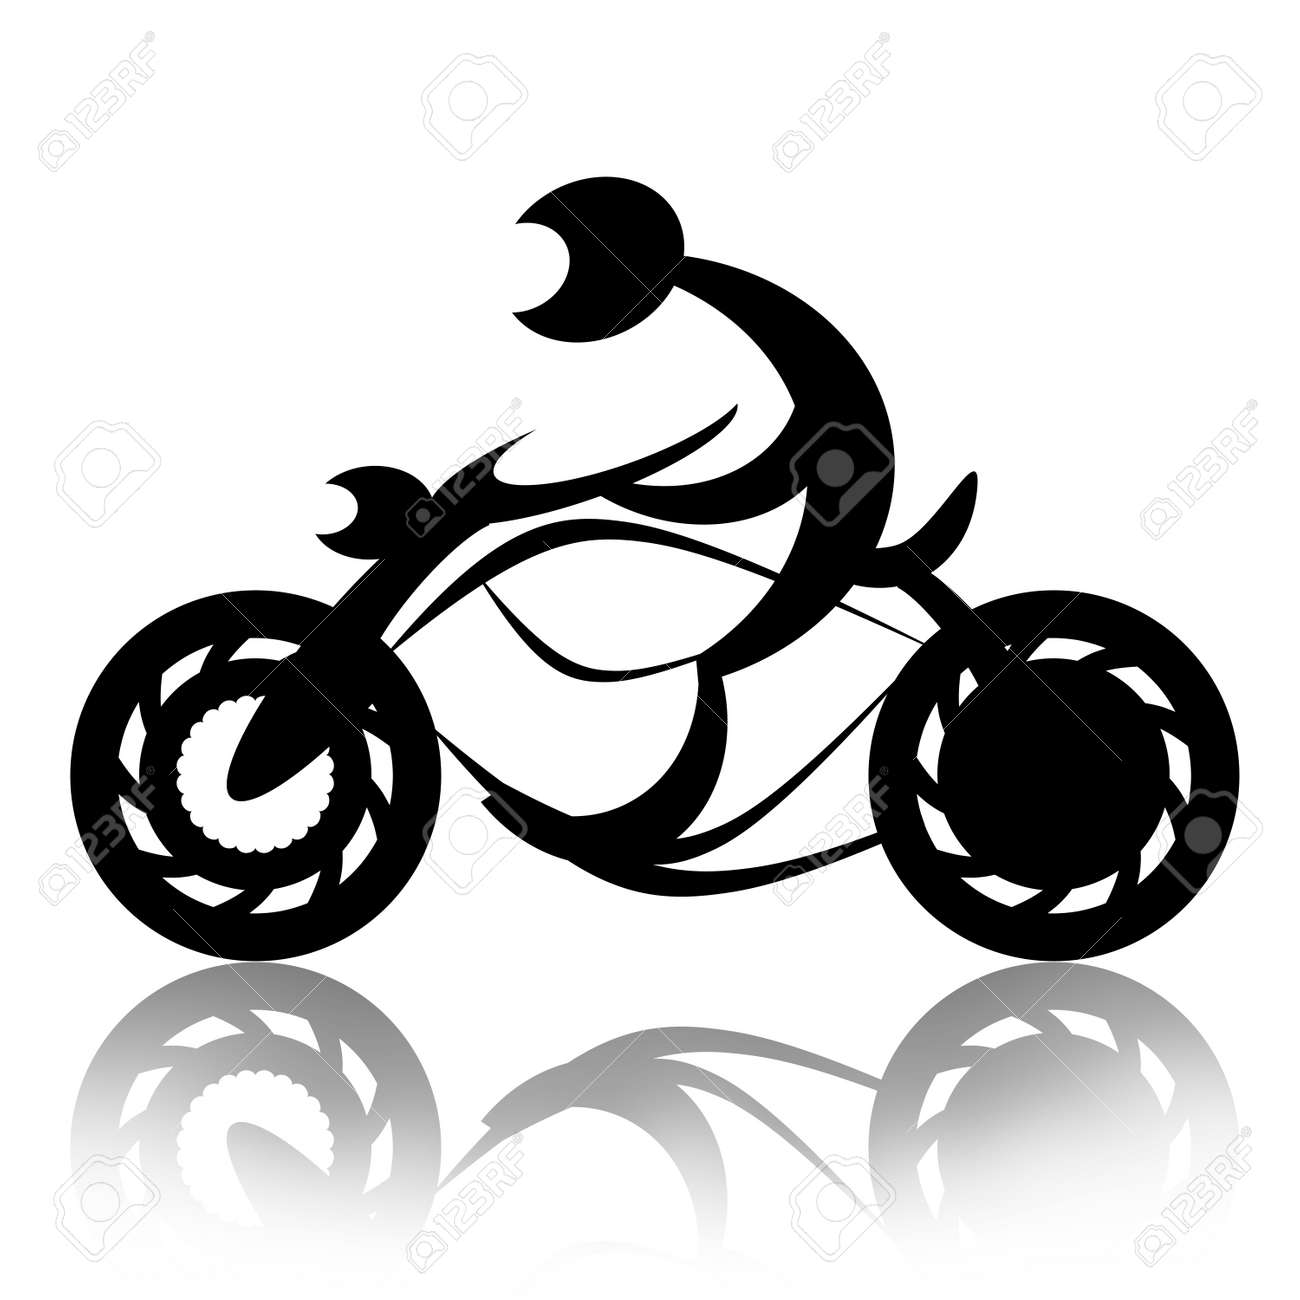 Biker Rides Motorcycle Abstract Silhouette Illustration Over White  Background Stock Illustration   7381288